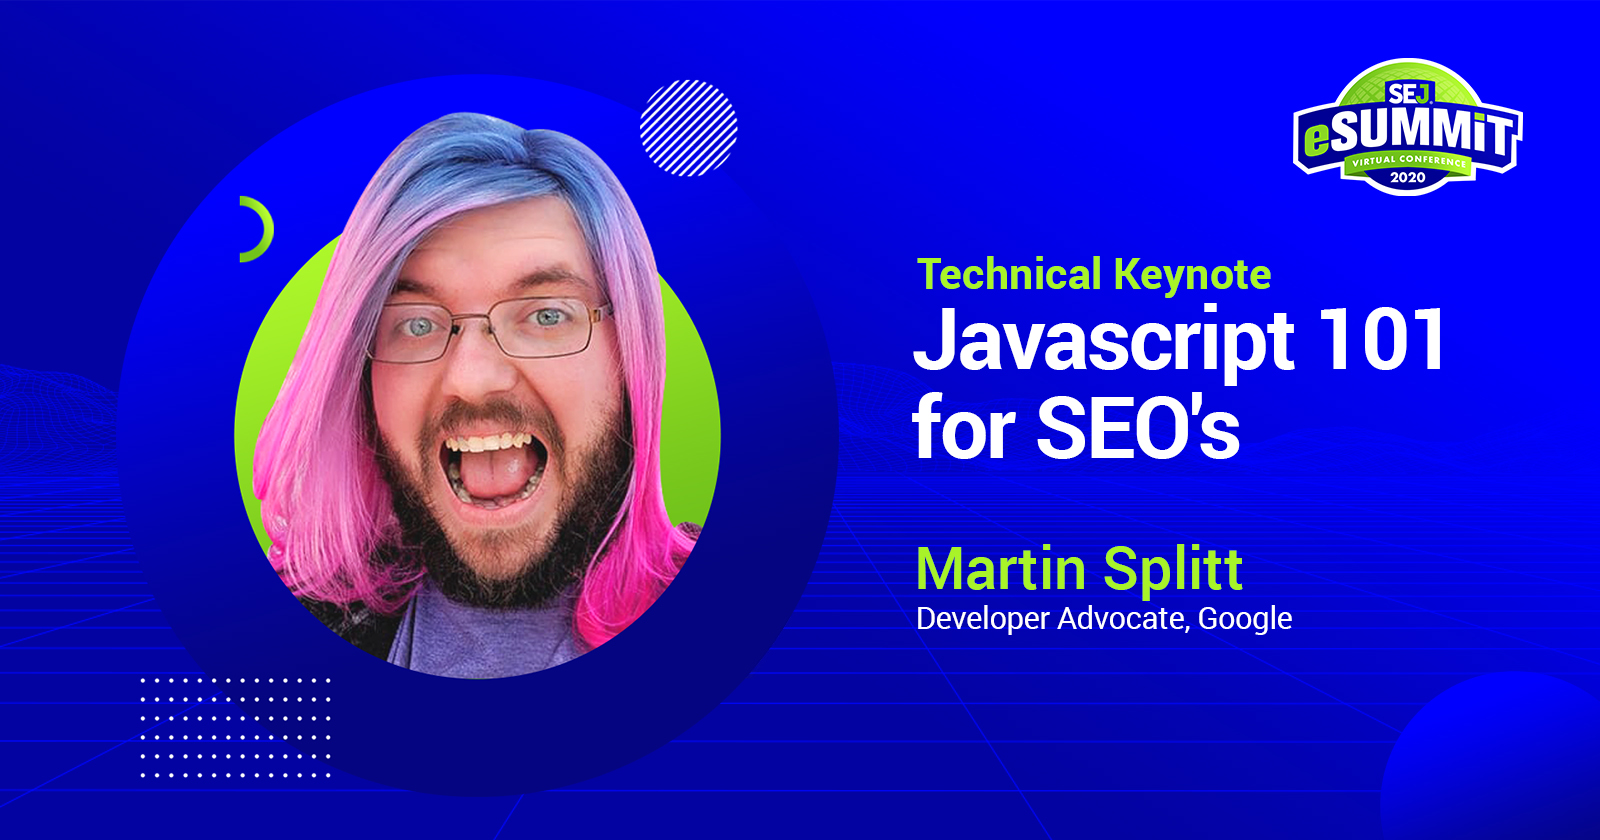 googles martin splitt javascript 101 for seos 5f088d580a789